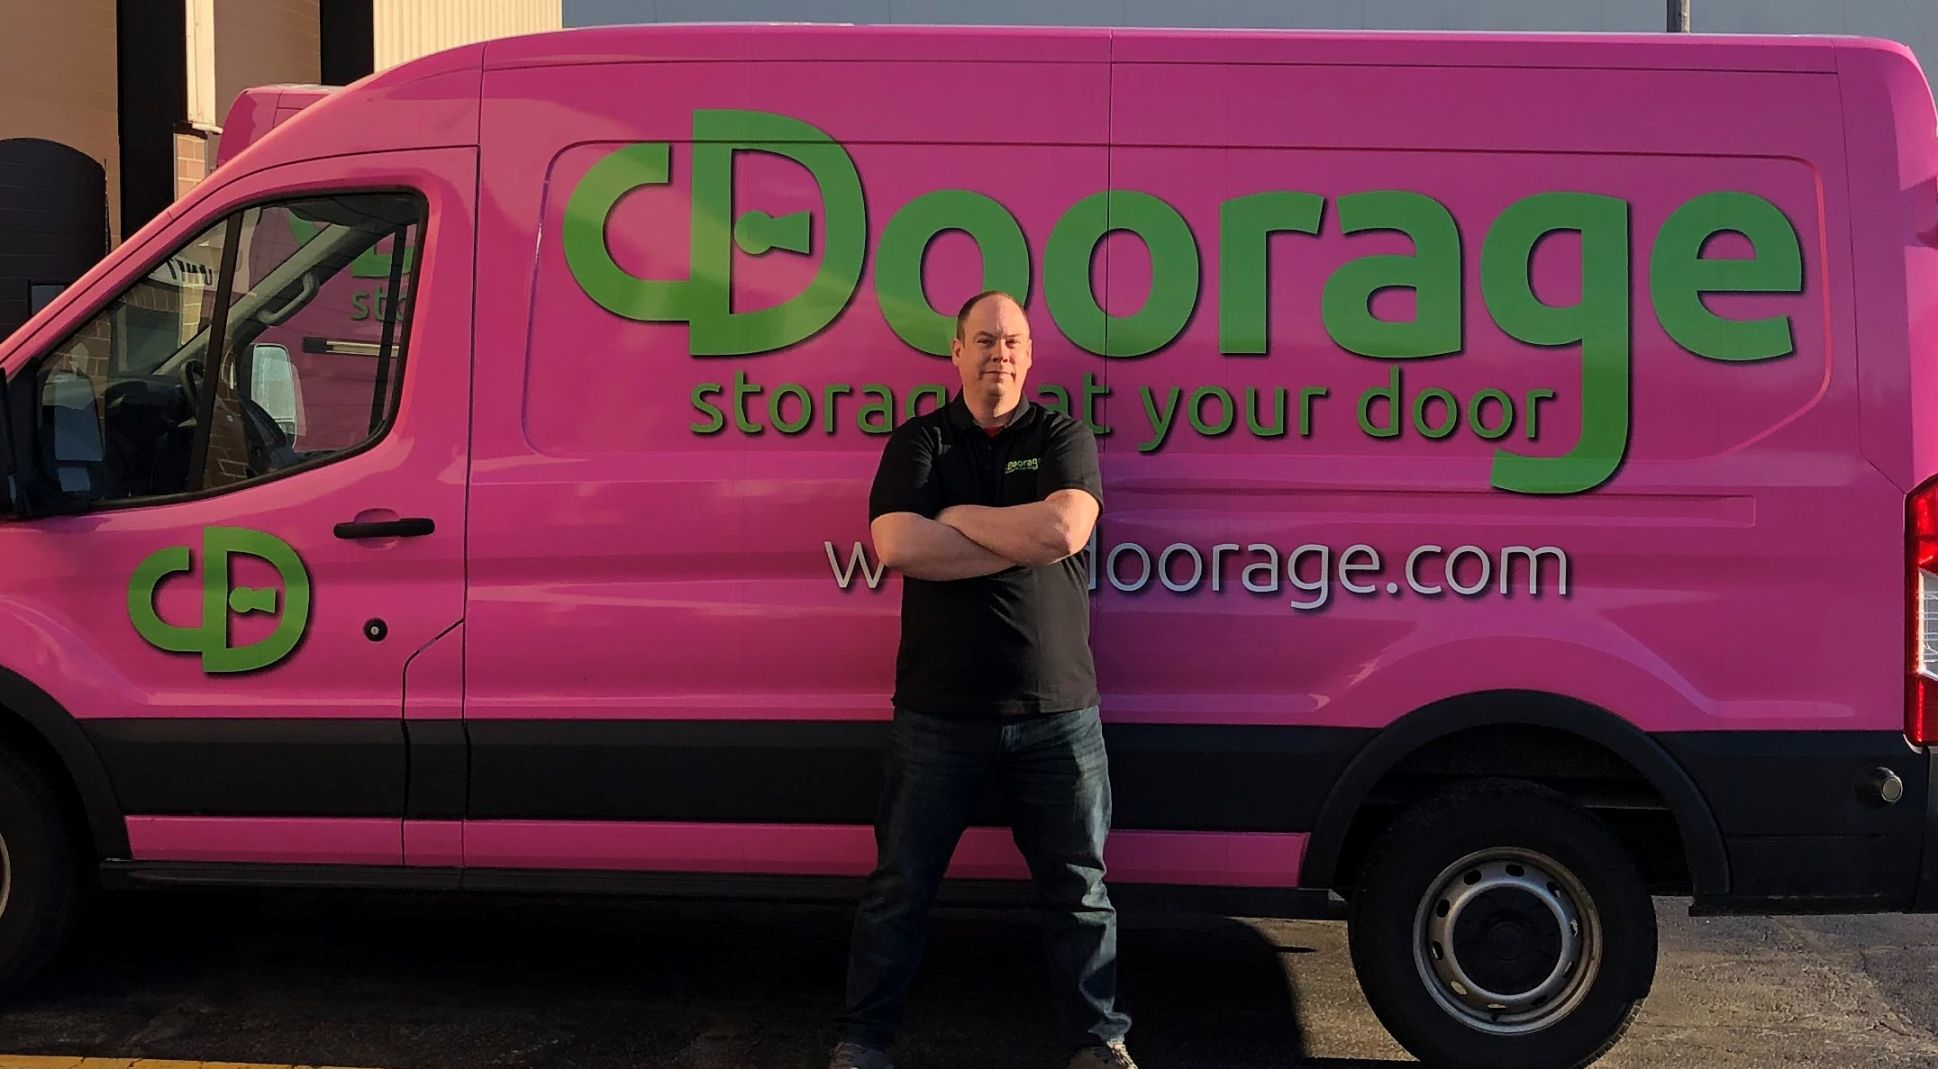 Bon Sean Sandona Founded Doorage In Chicago In 2018 And Last Month Opened  Storage Facilities In Madison And Milwaukee. Customers Do Not Go To The  Storage ...